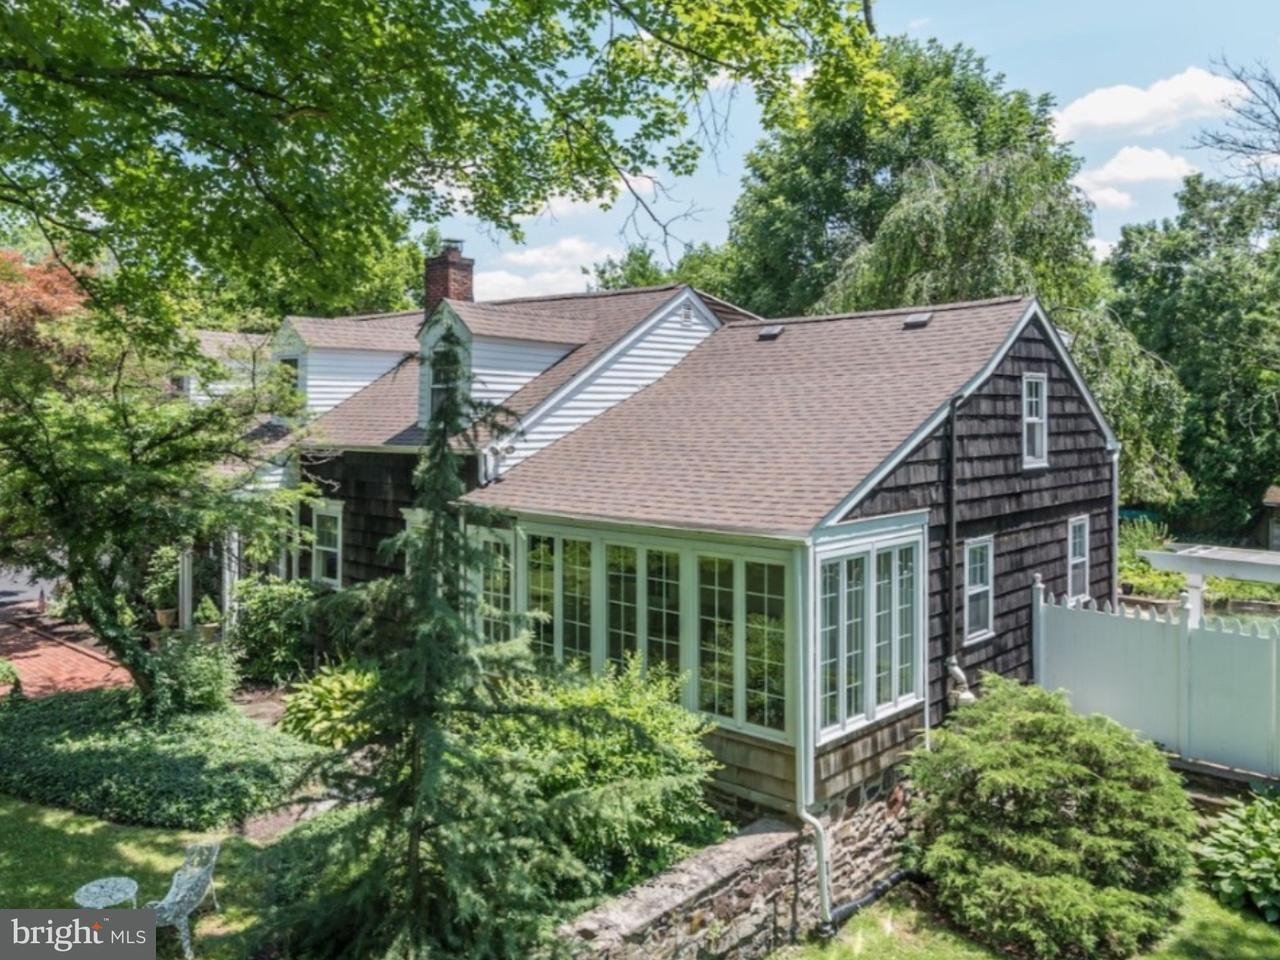 Single Family Home for Sale at 726 FOREST GROVE Road Wycombe, Pennsylvania 18925 United States